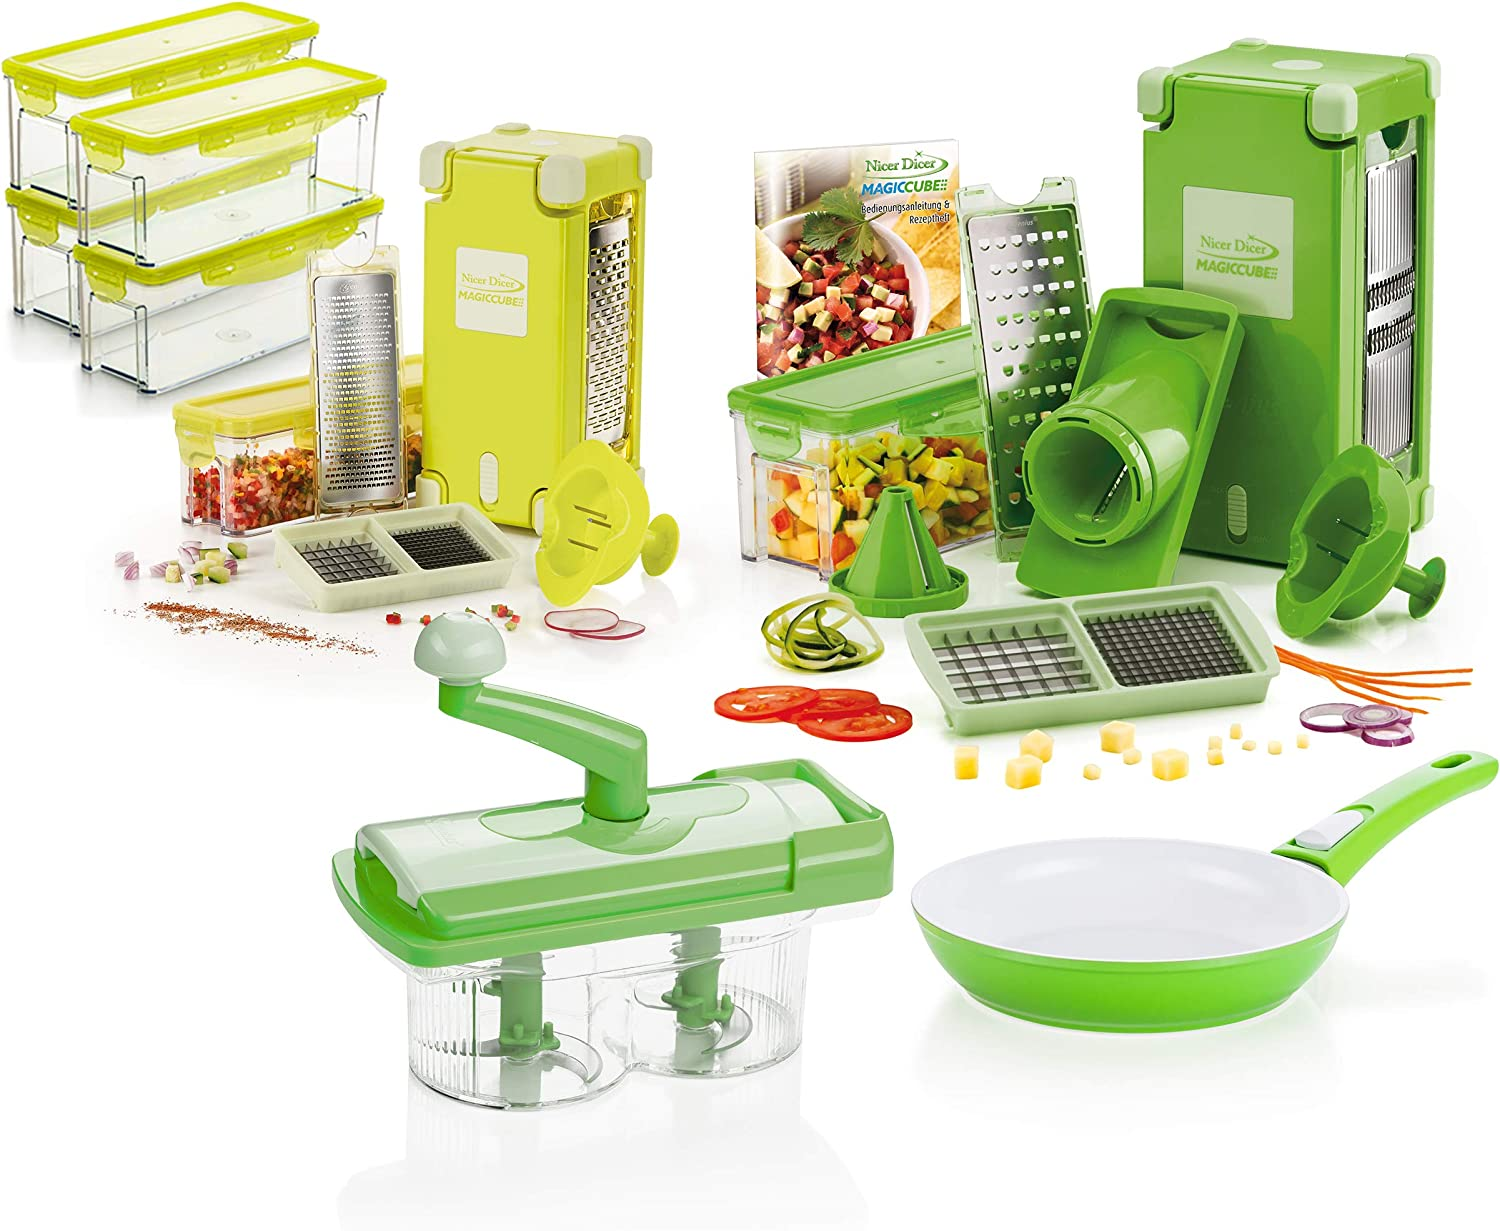 Genius Nicer Dicer Chef Glass Bowl with Lid and Silicone Mat Combination Set as seen on TV New